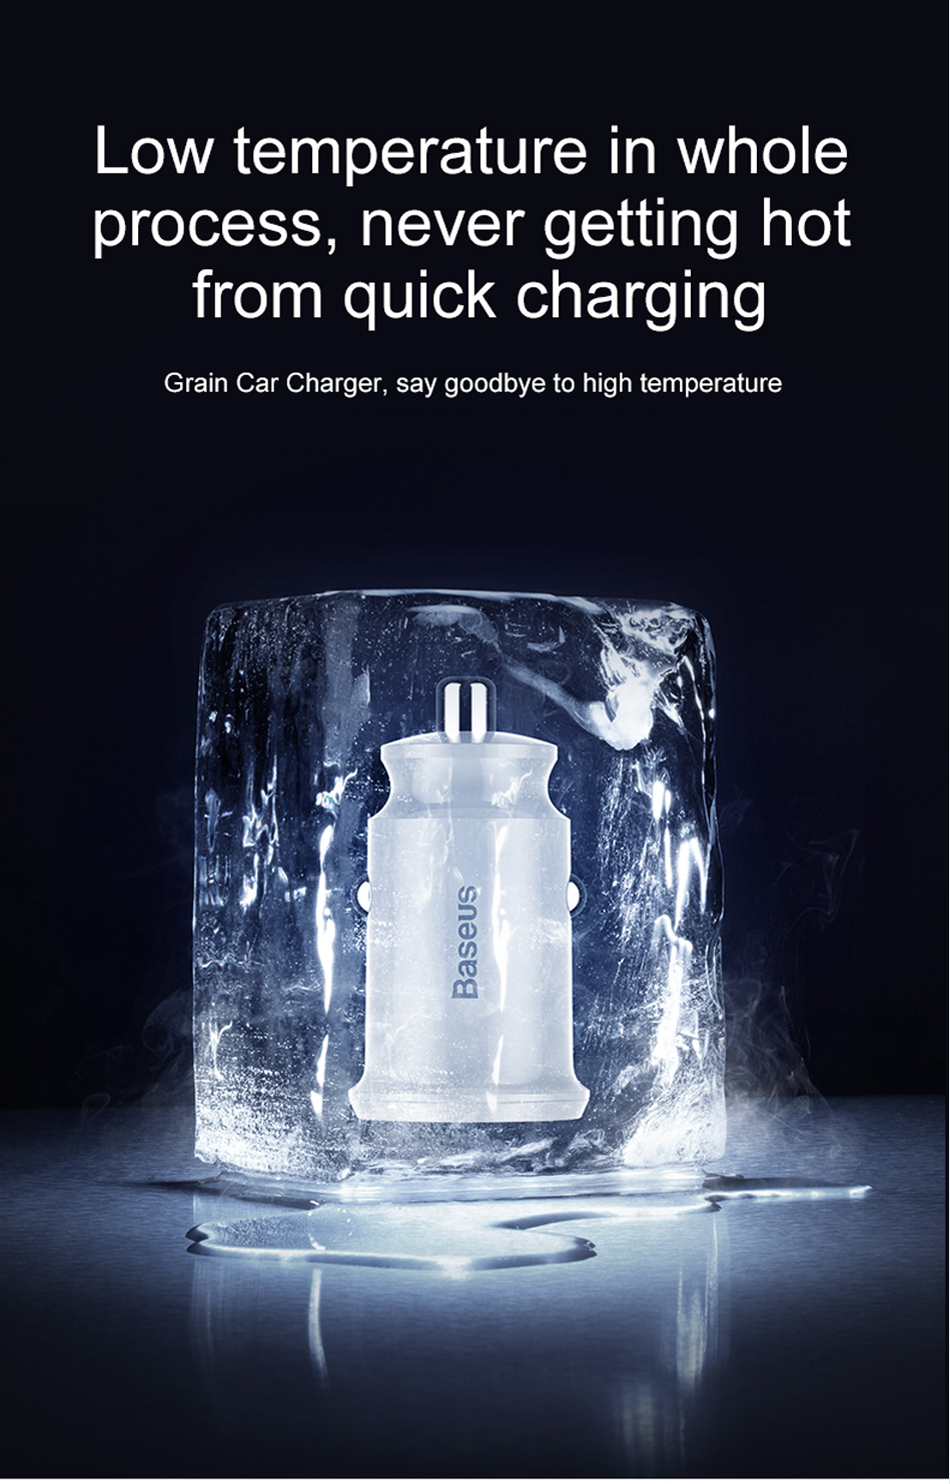 Baseus Mini USB Car Charger For Mobile Phone Tablet GPS 3.1A Fast Charger Car Charger Dual USB Car Phone Charger Adapter in Car-in Car Chargers from Cellphones & Telecommunications on Aliexpress.com | Alibaba Group 11